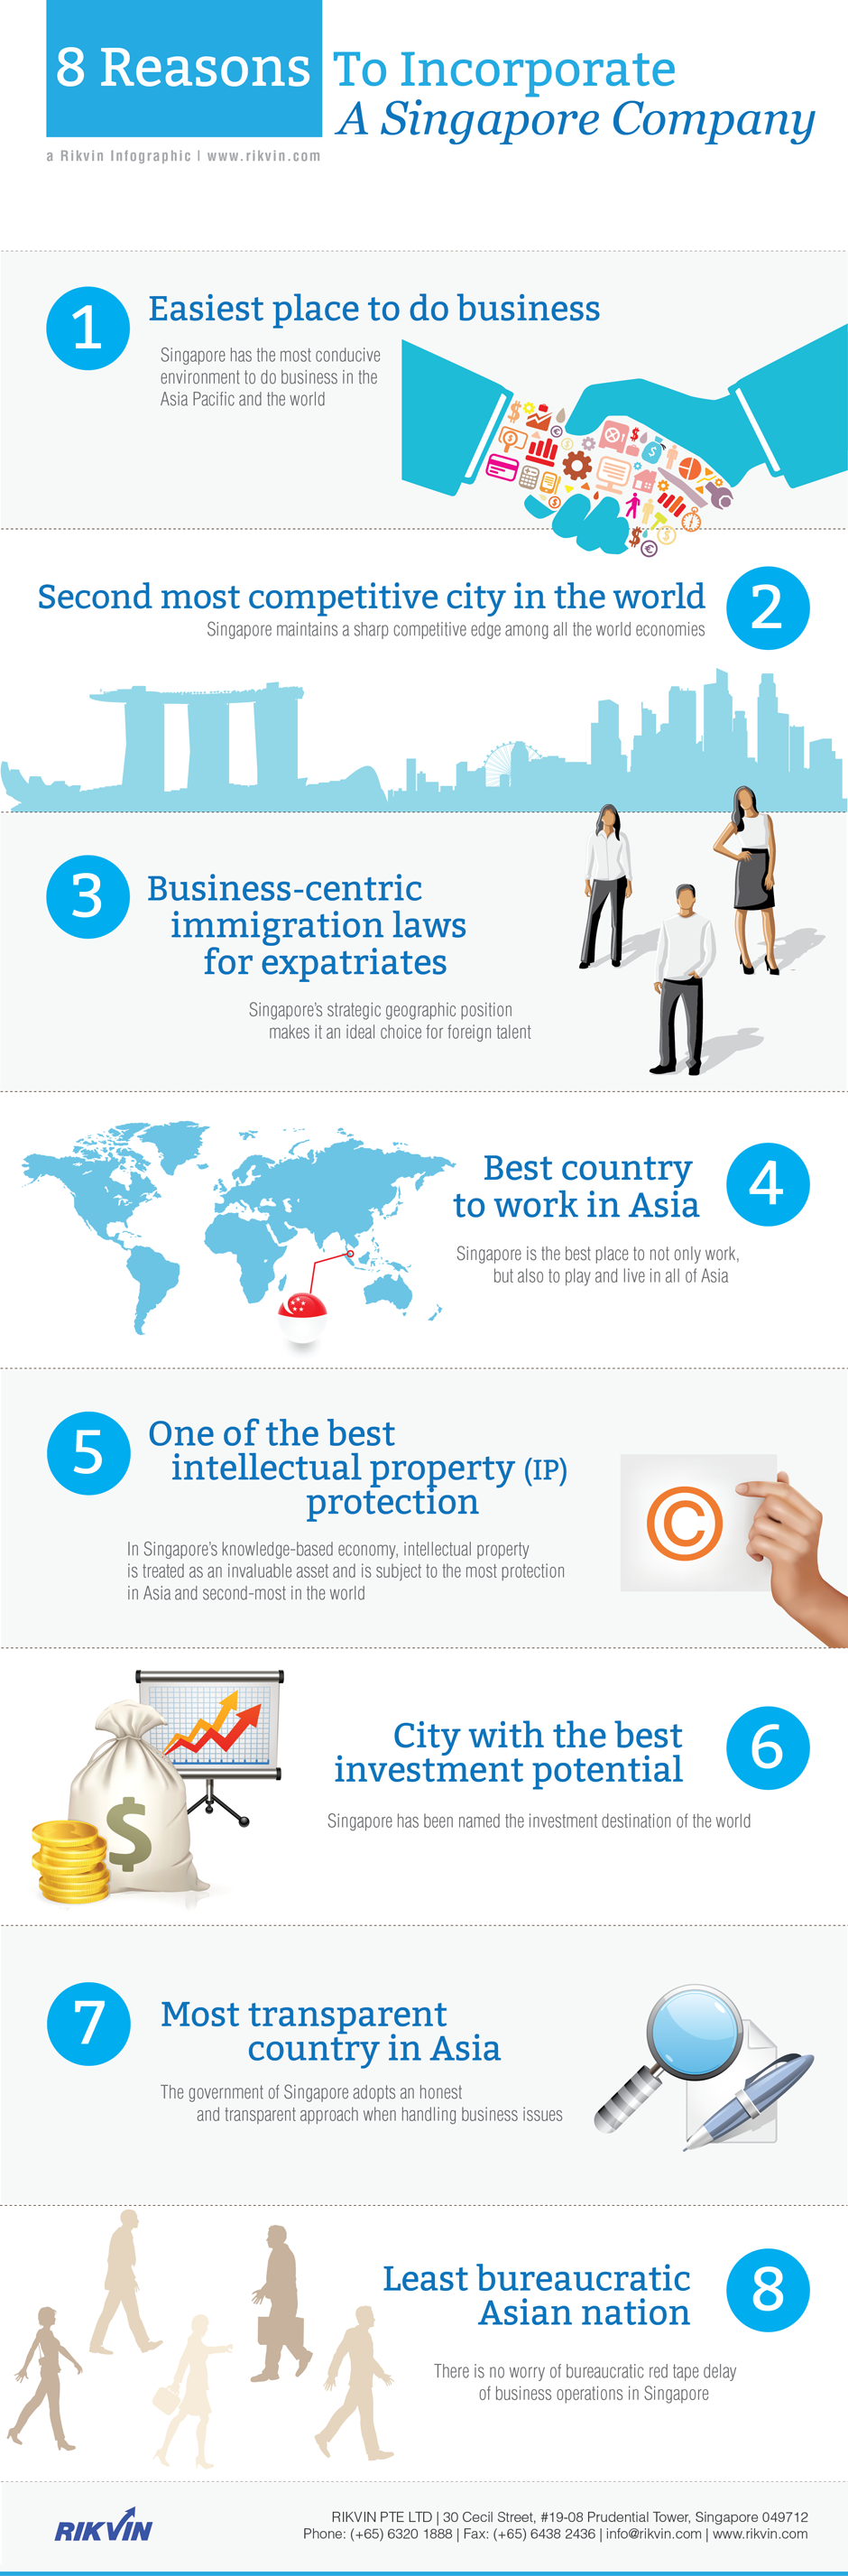 8-reasons-to-incorporate-a-company-in-Singapore Infographic: 8 Reasons to Incorporate a Singapore Company